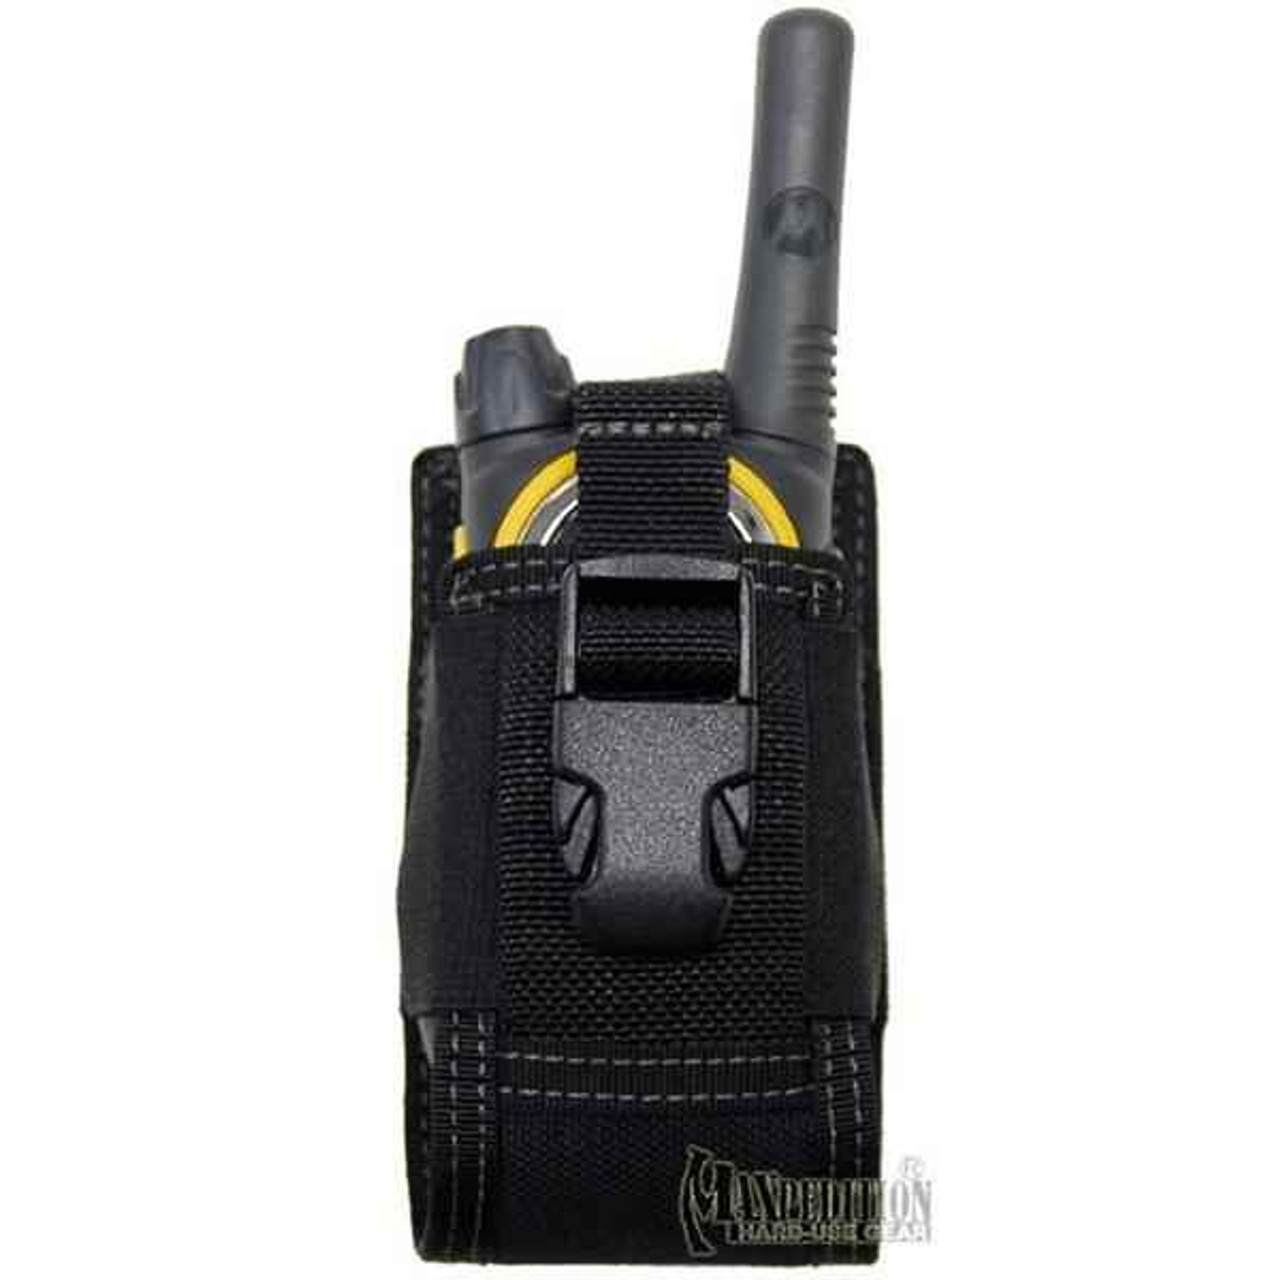 Maxpedition 4.5 in. Clip on Phone Holster| Color| Green